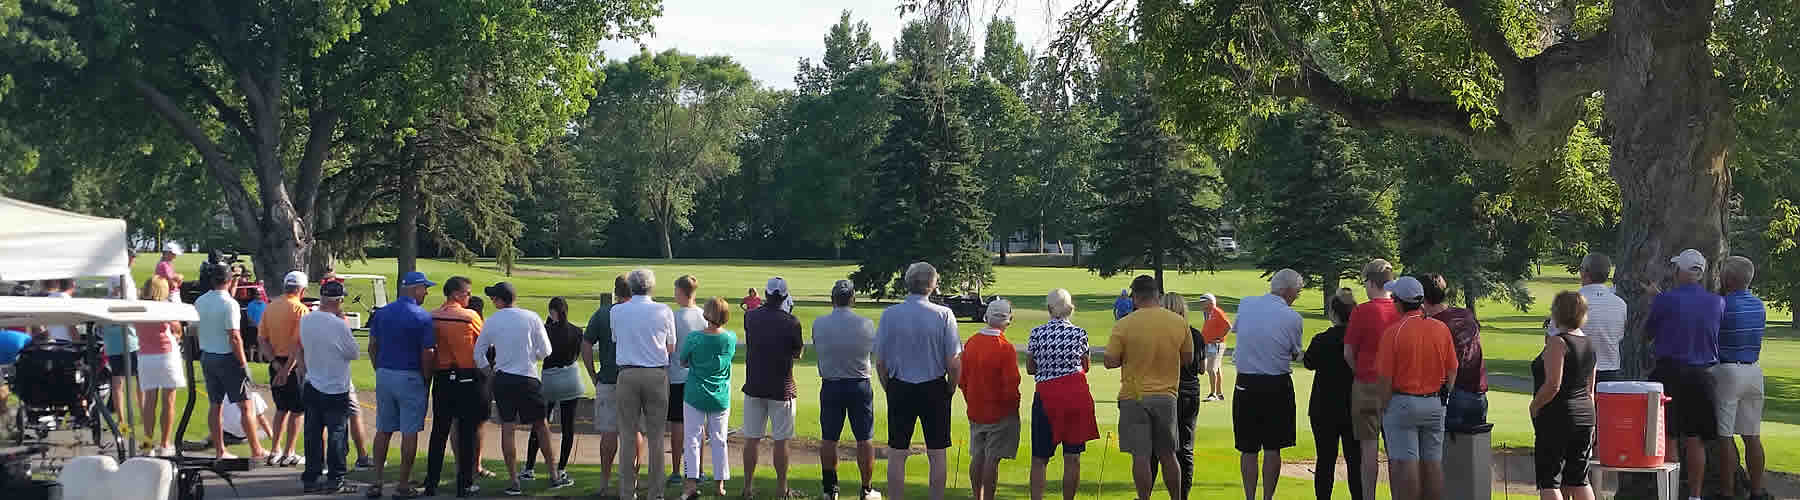 See pictures of the Pine to Palm Golf Tournament in Detroit Lakes, Minnesota.